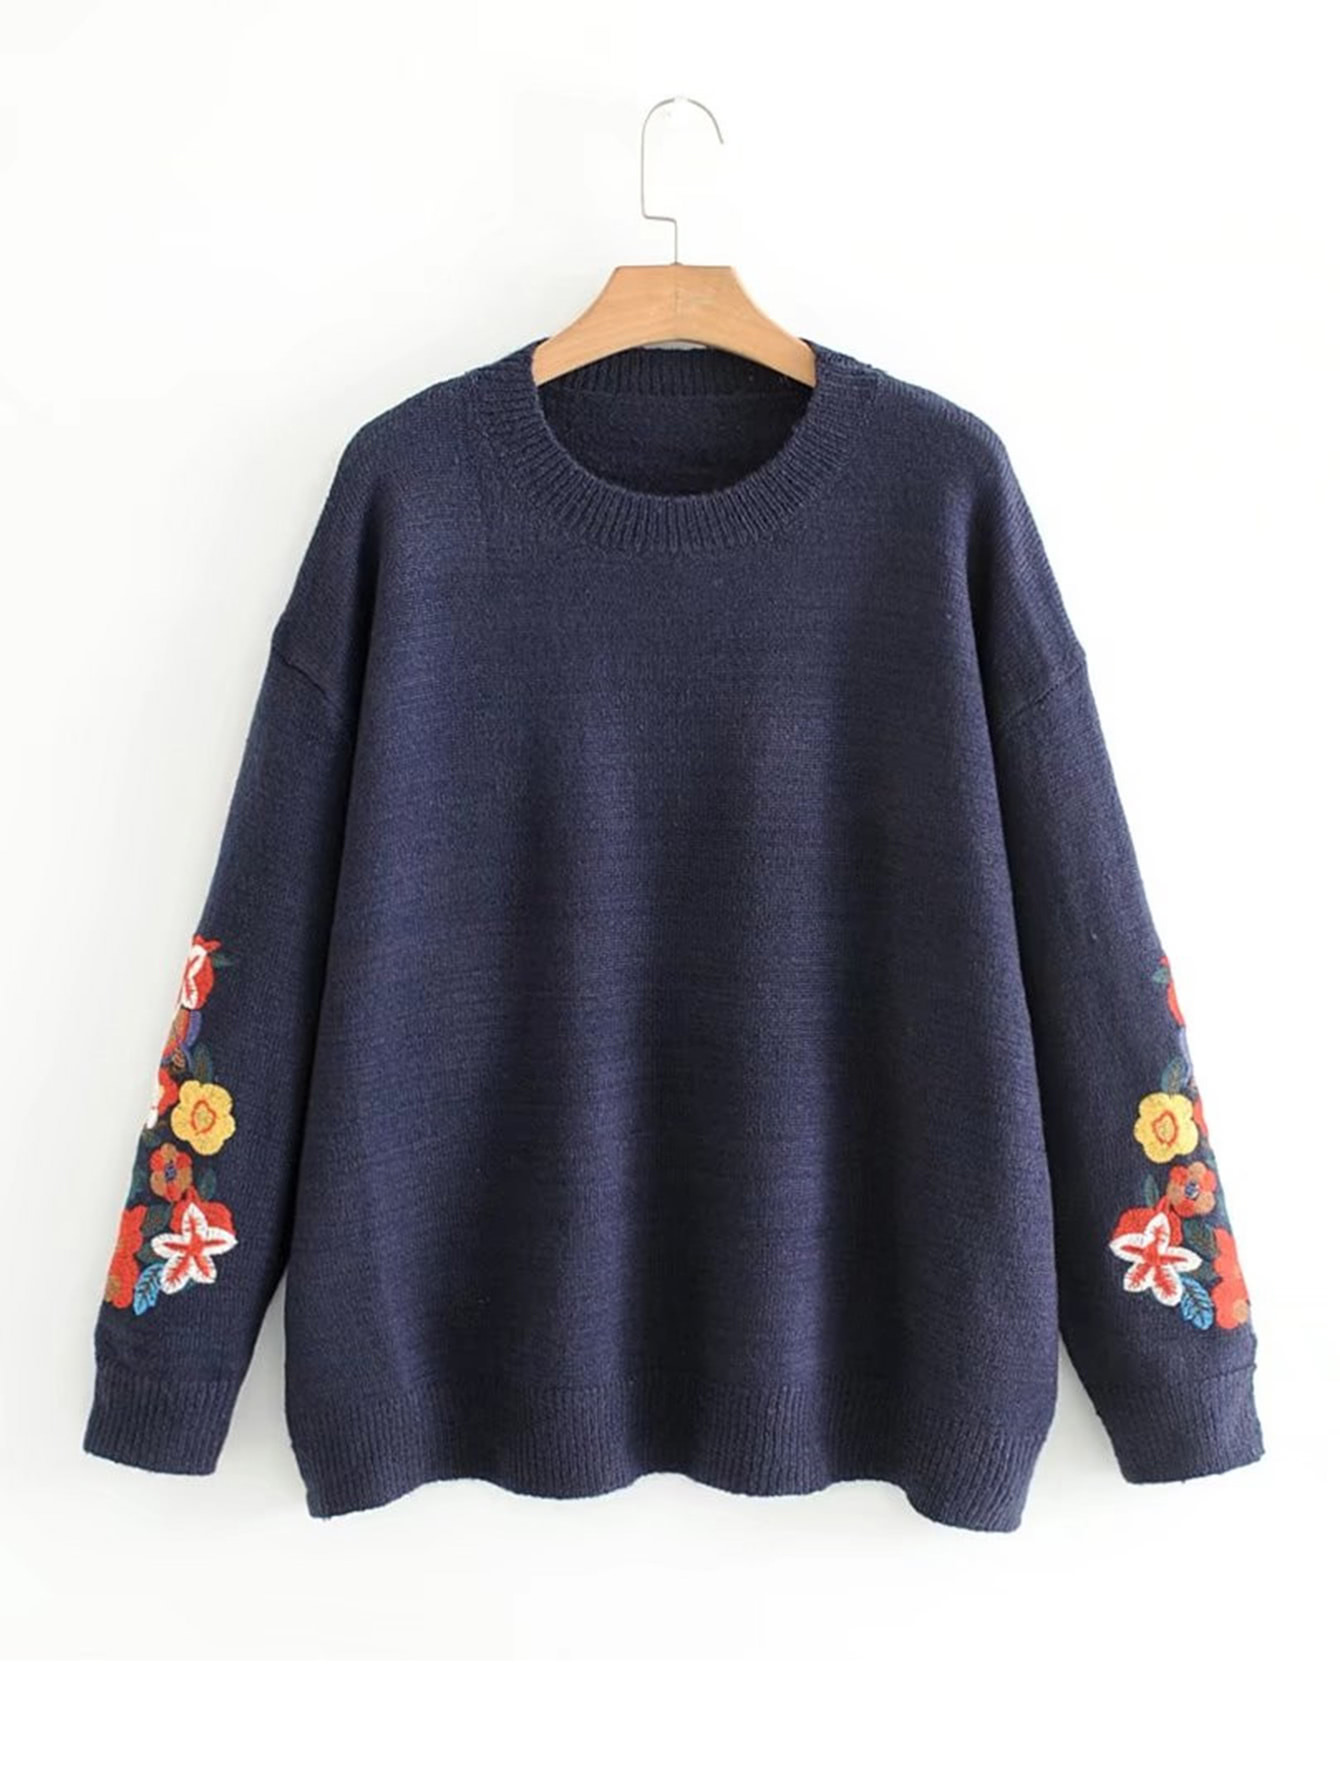 Embroidery Flower Jumper Sweater бра colosseo 21409 3 albani